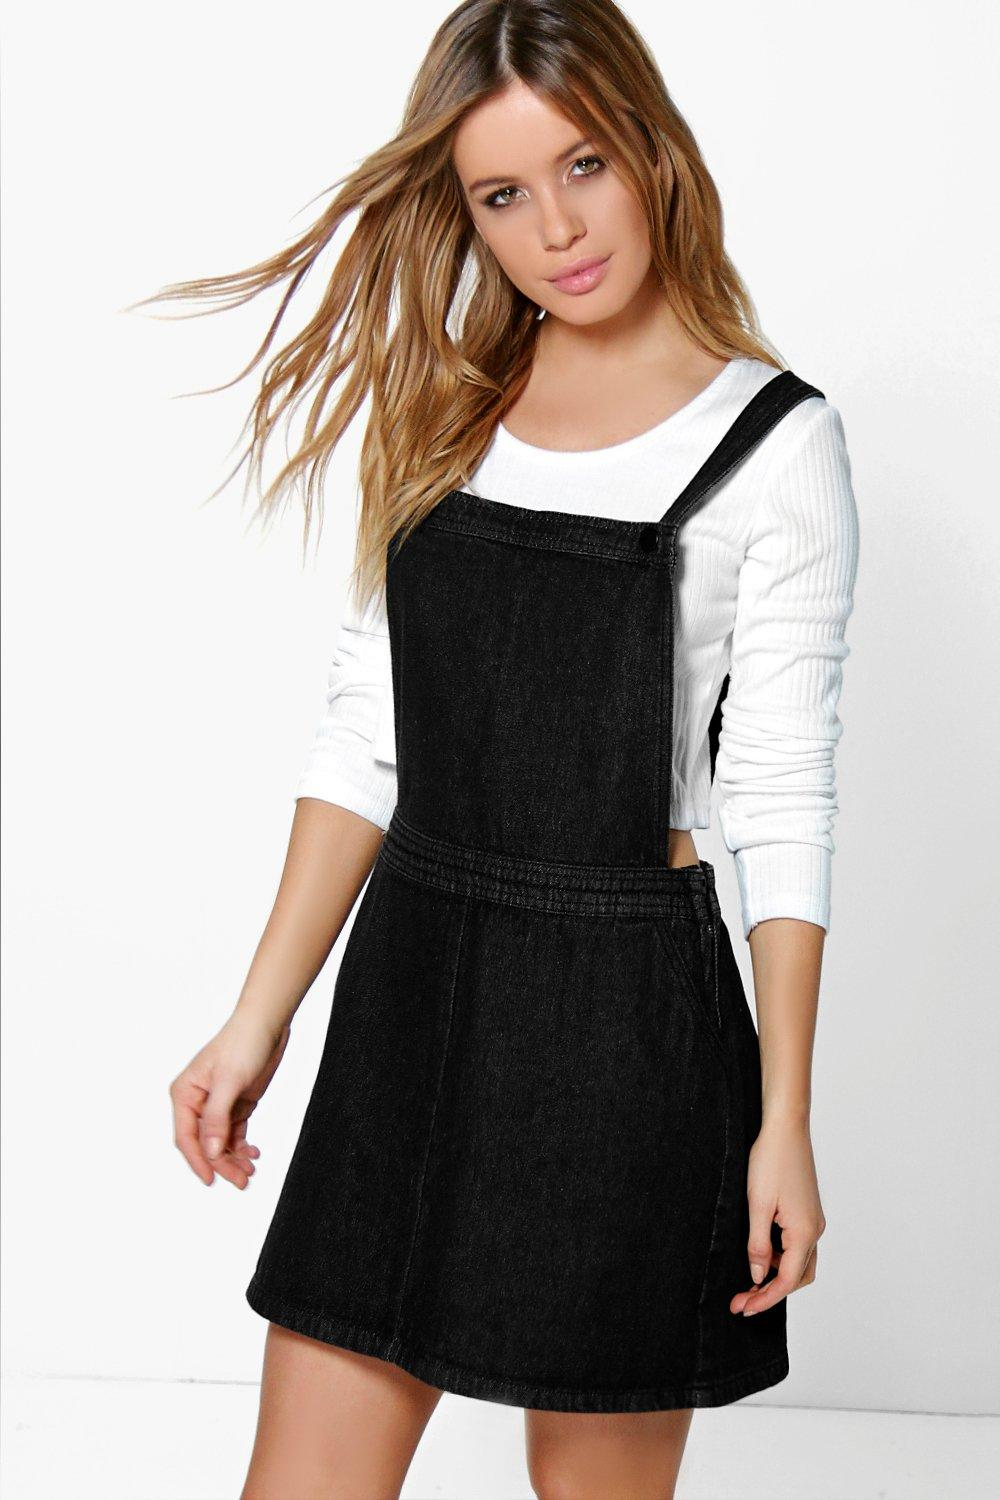 Creative Boohoo Womens India Denim Dungaree Pinafore Dress In Indigo Size 6